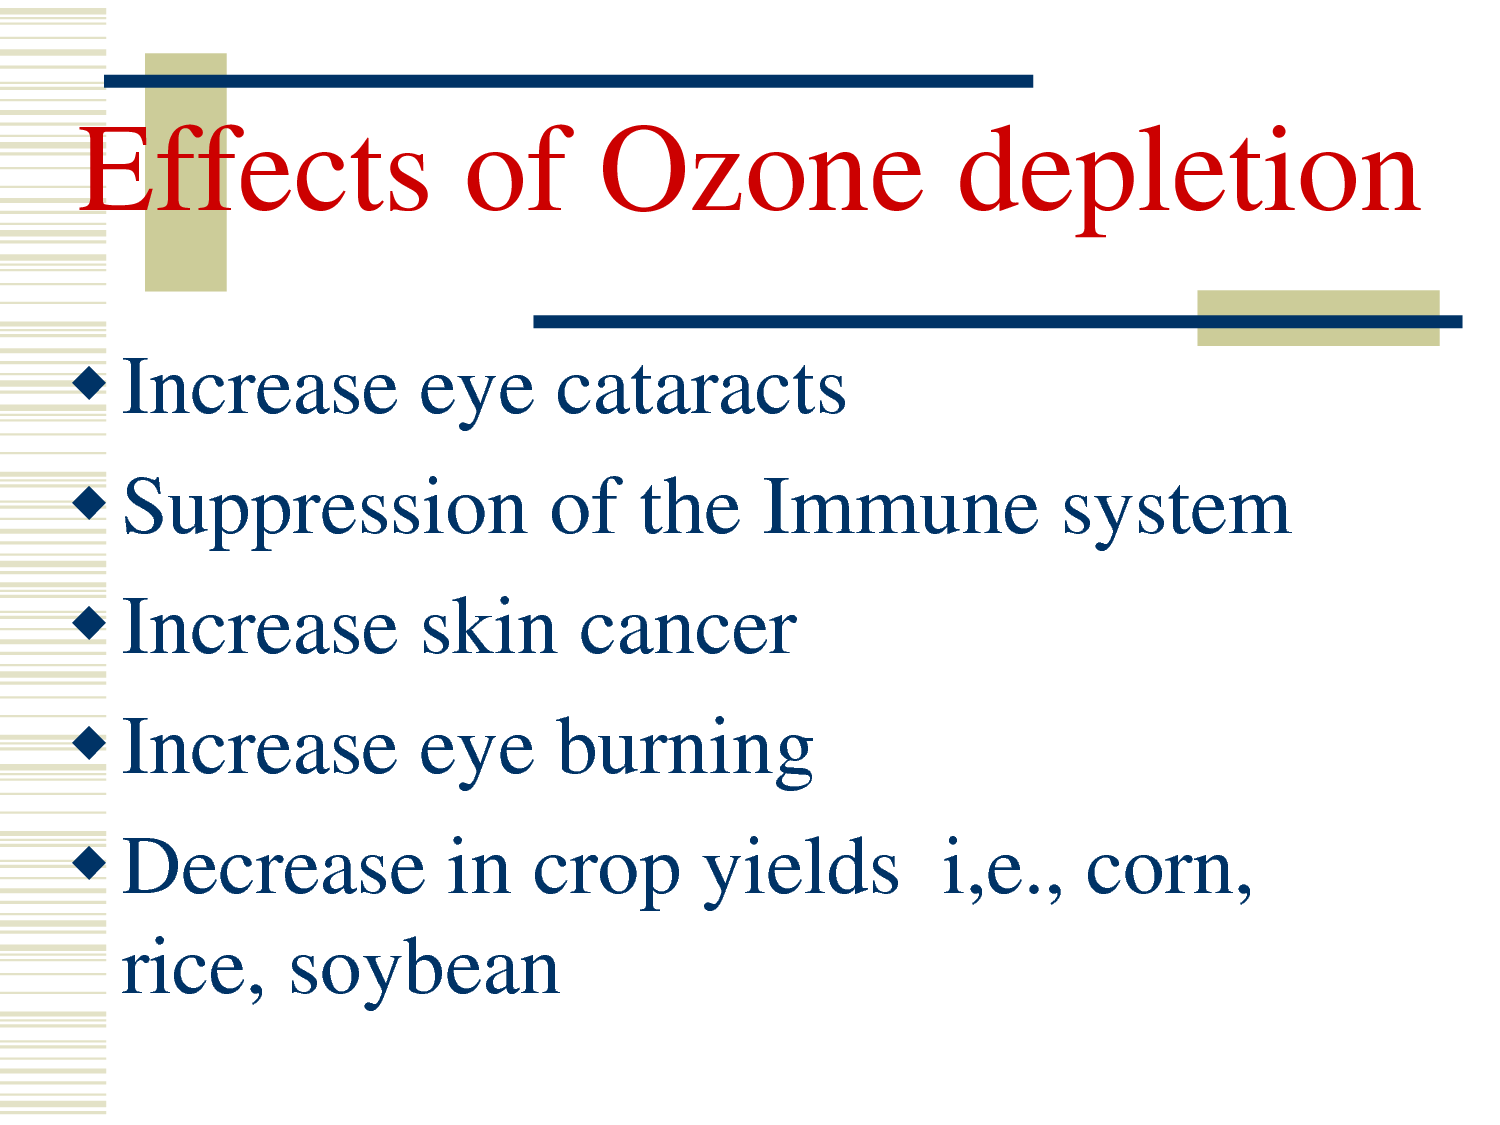 ozone depletion essay depletion of ozone layer essay buy essay  essay on ozone layer depletion and its effects limited time chess com